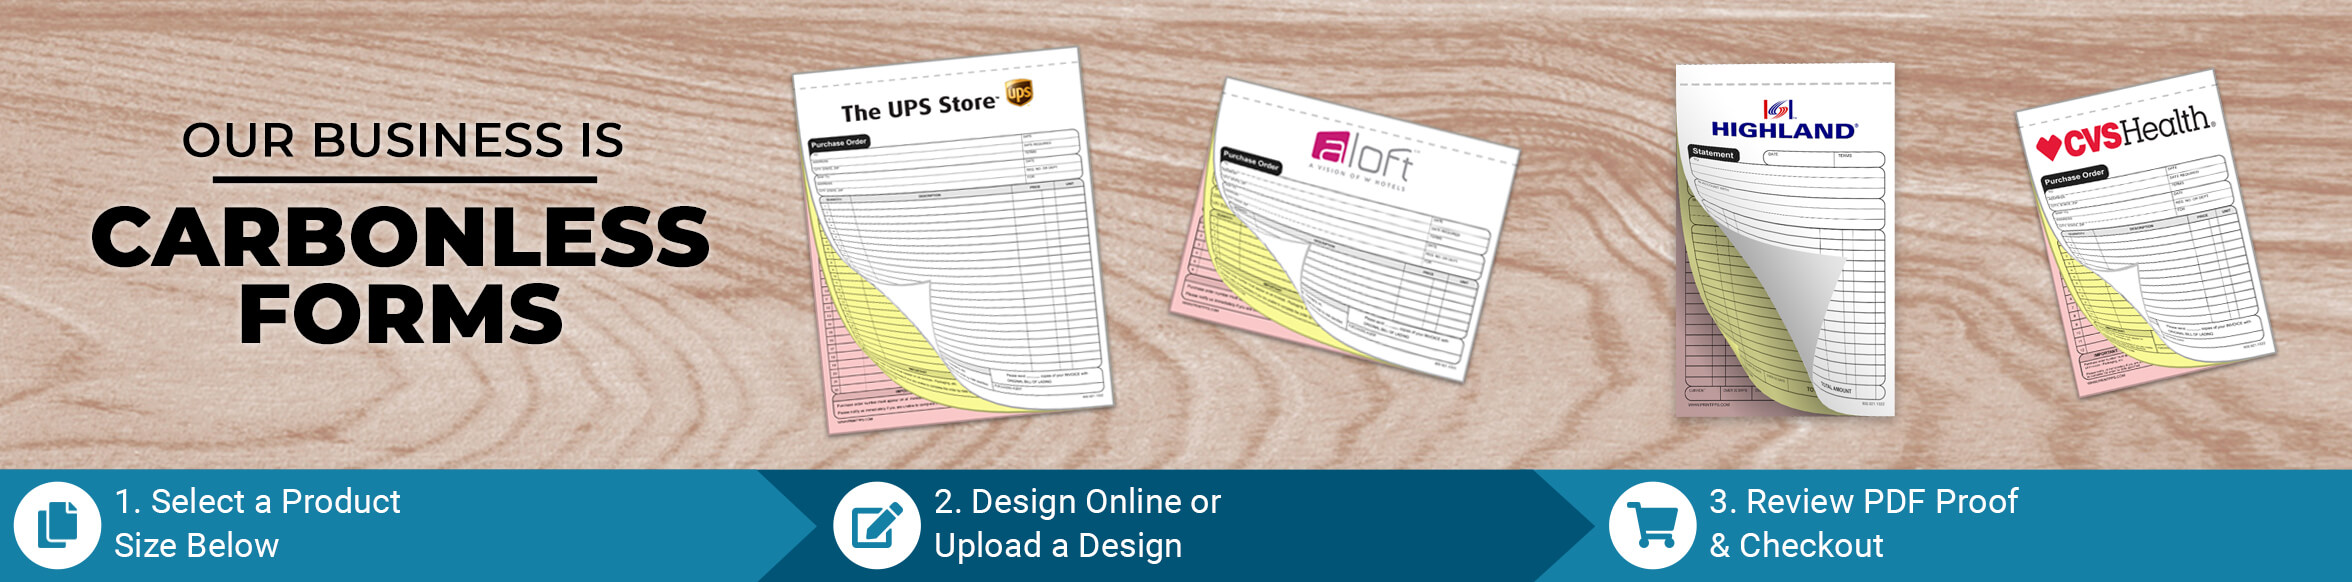 Custom Carbonless NCR Forms   Printpps.com on car forms, oracle forms, basic sample order forms, rca forms, blank order forms, digital forms, construction billing forms, manifold forms, business forms, two-part custom forms, google forms, star forms,